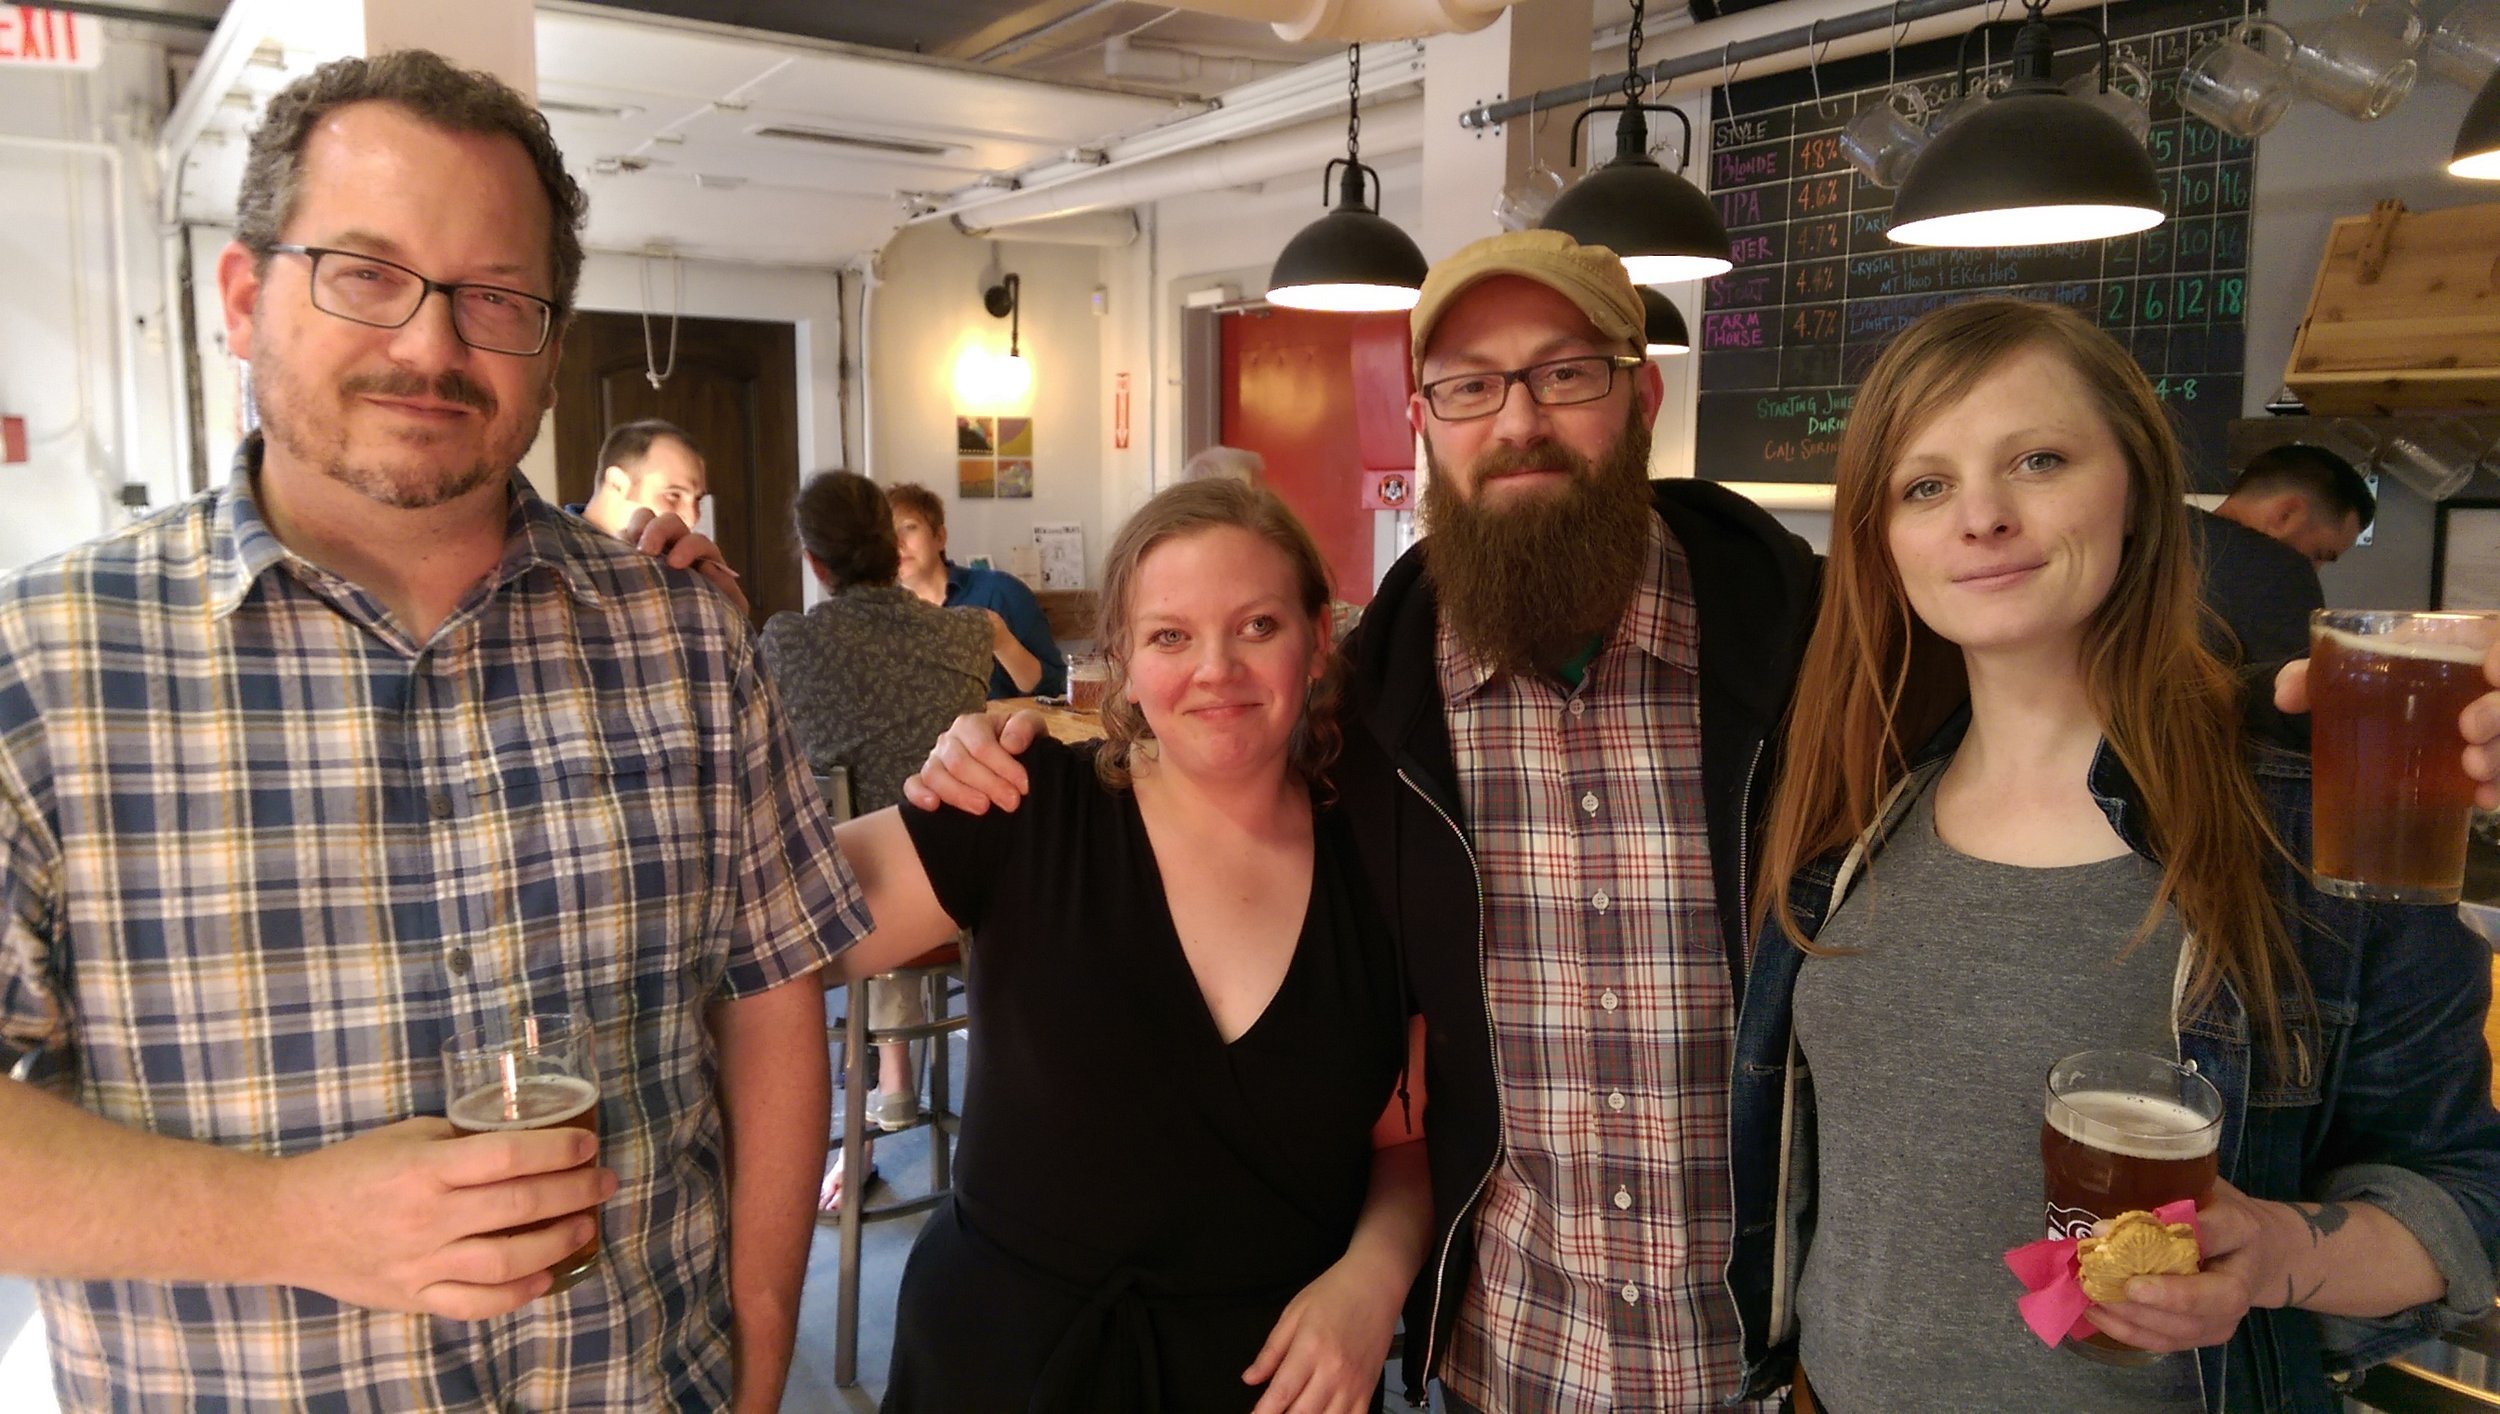 L-R: local artist anthony falcetta, artist cali serino, owners of mingo gallery george frary and katherine romansky attend serino's opening at gentile brewing co. in beverly, MA